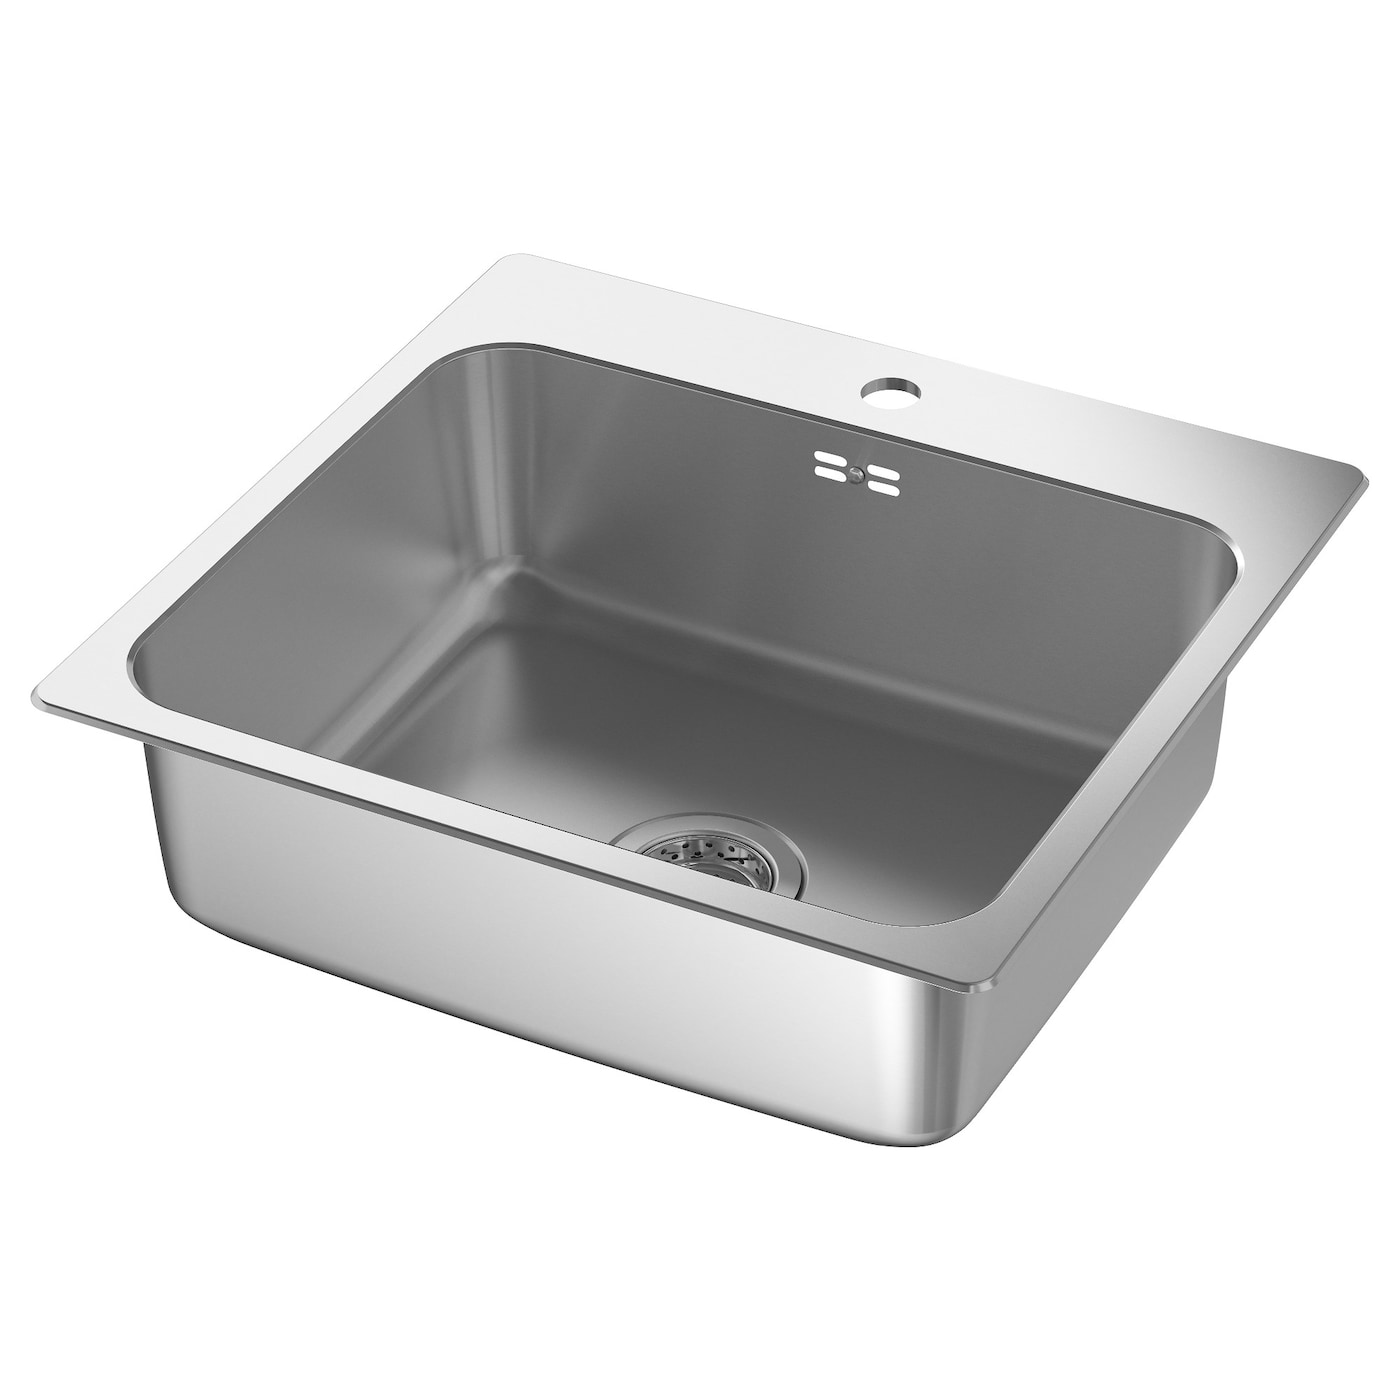 Ikea långudden inset sink 1 bowl 25 year guarantee read about the terms in